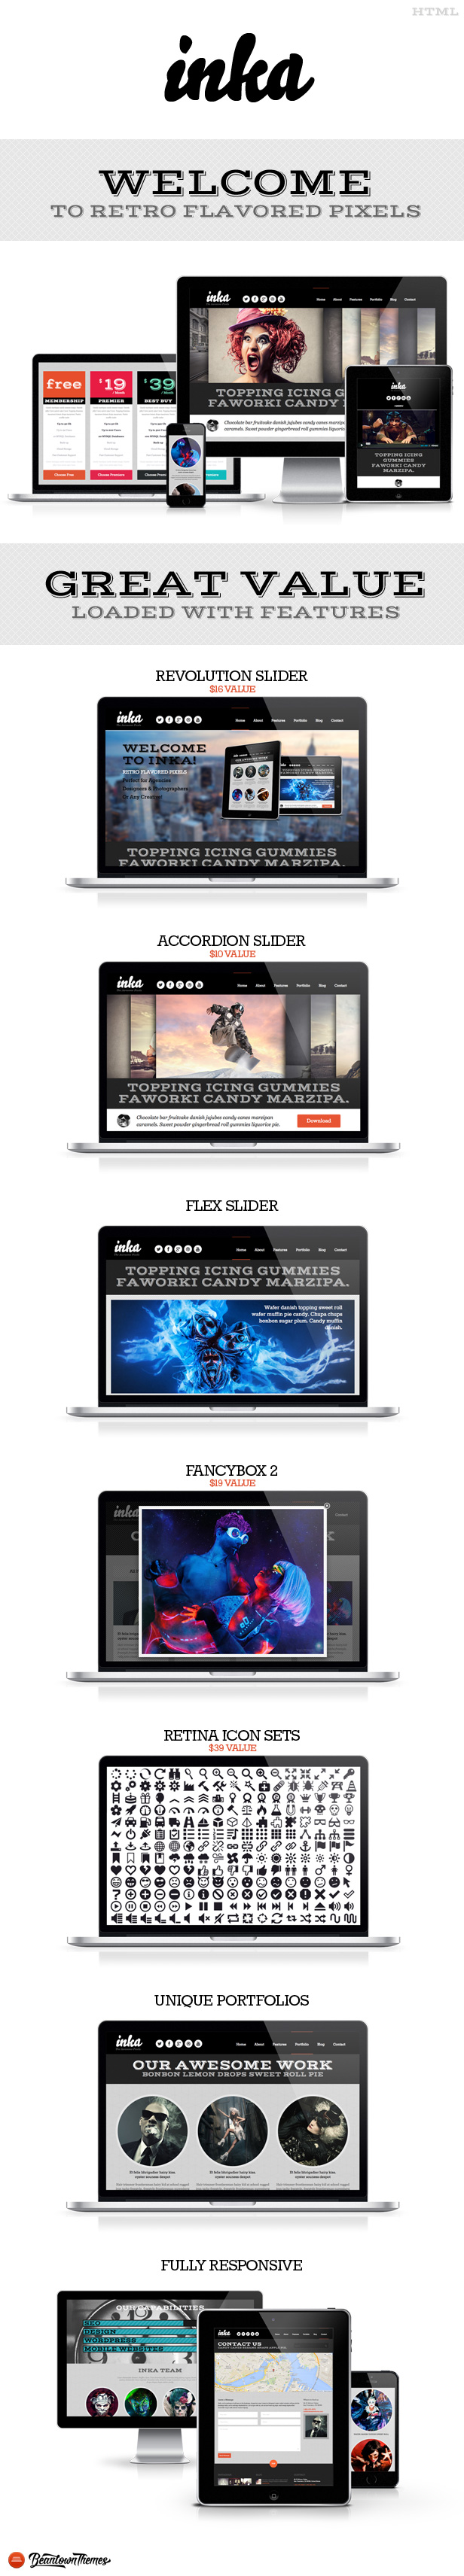 INKA - Retro Responsive Multi-Purpose Template - 2